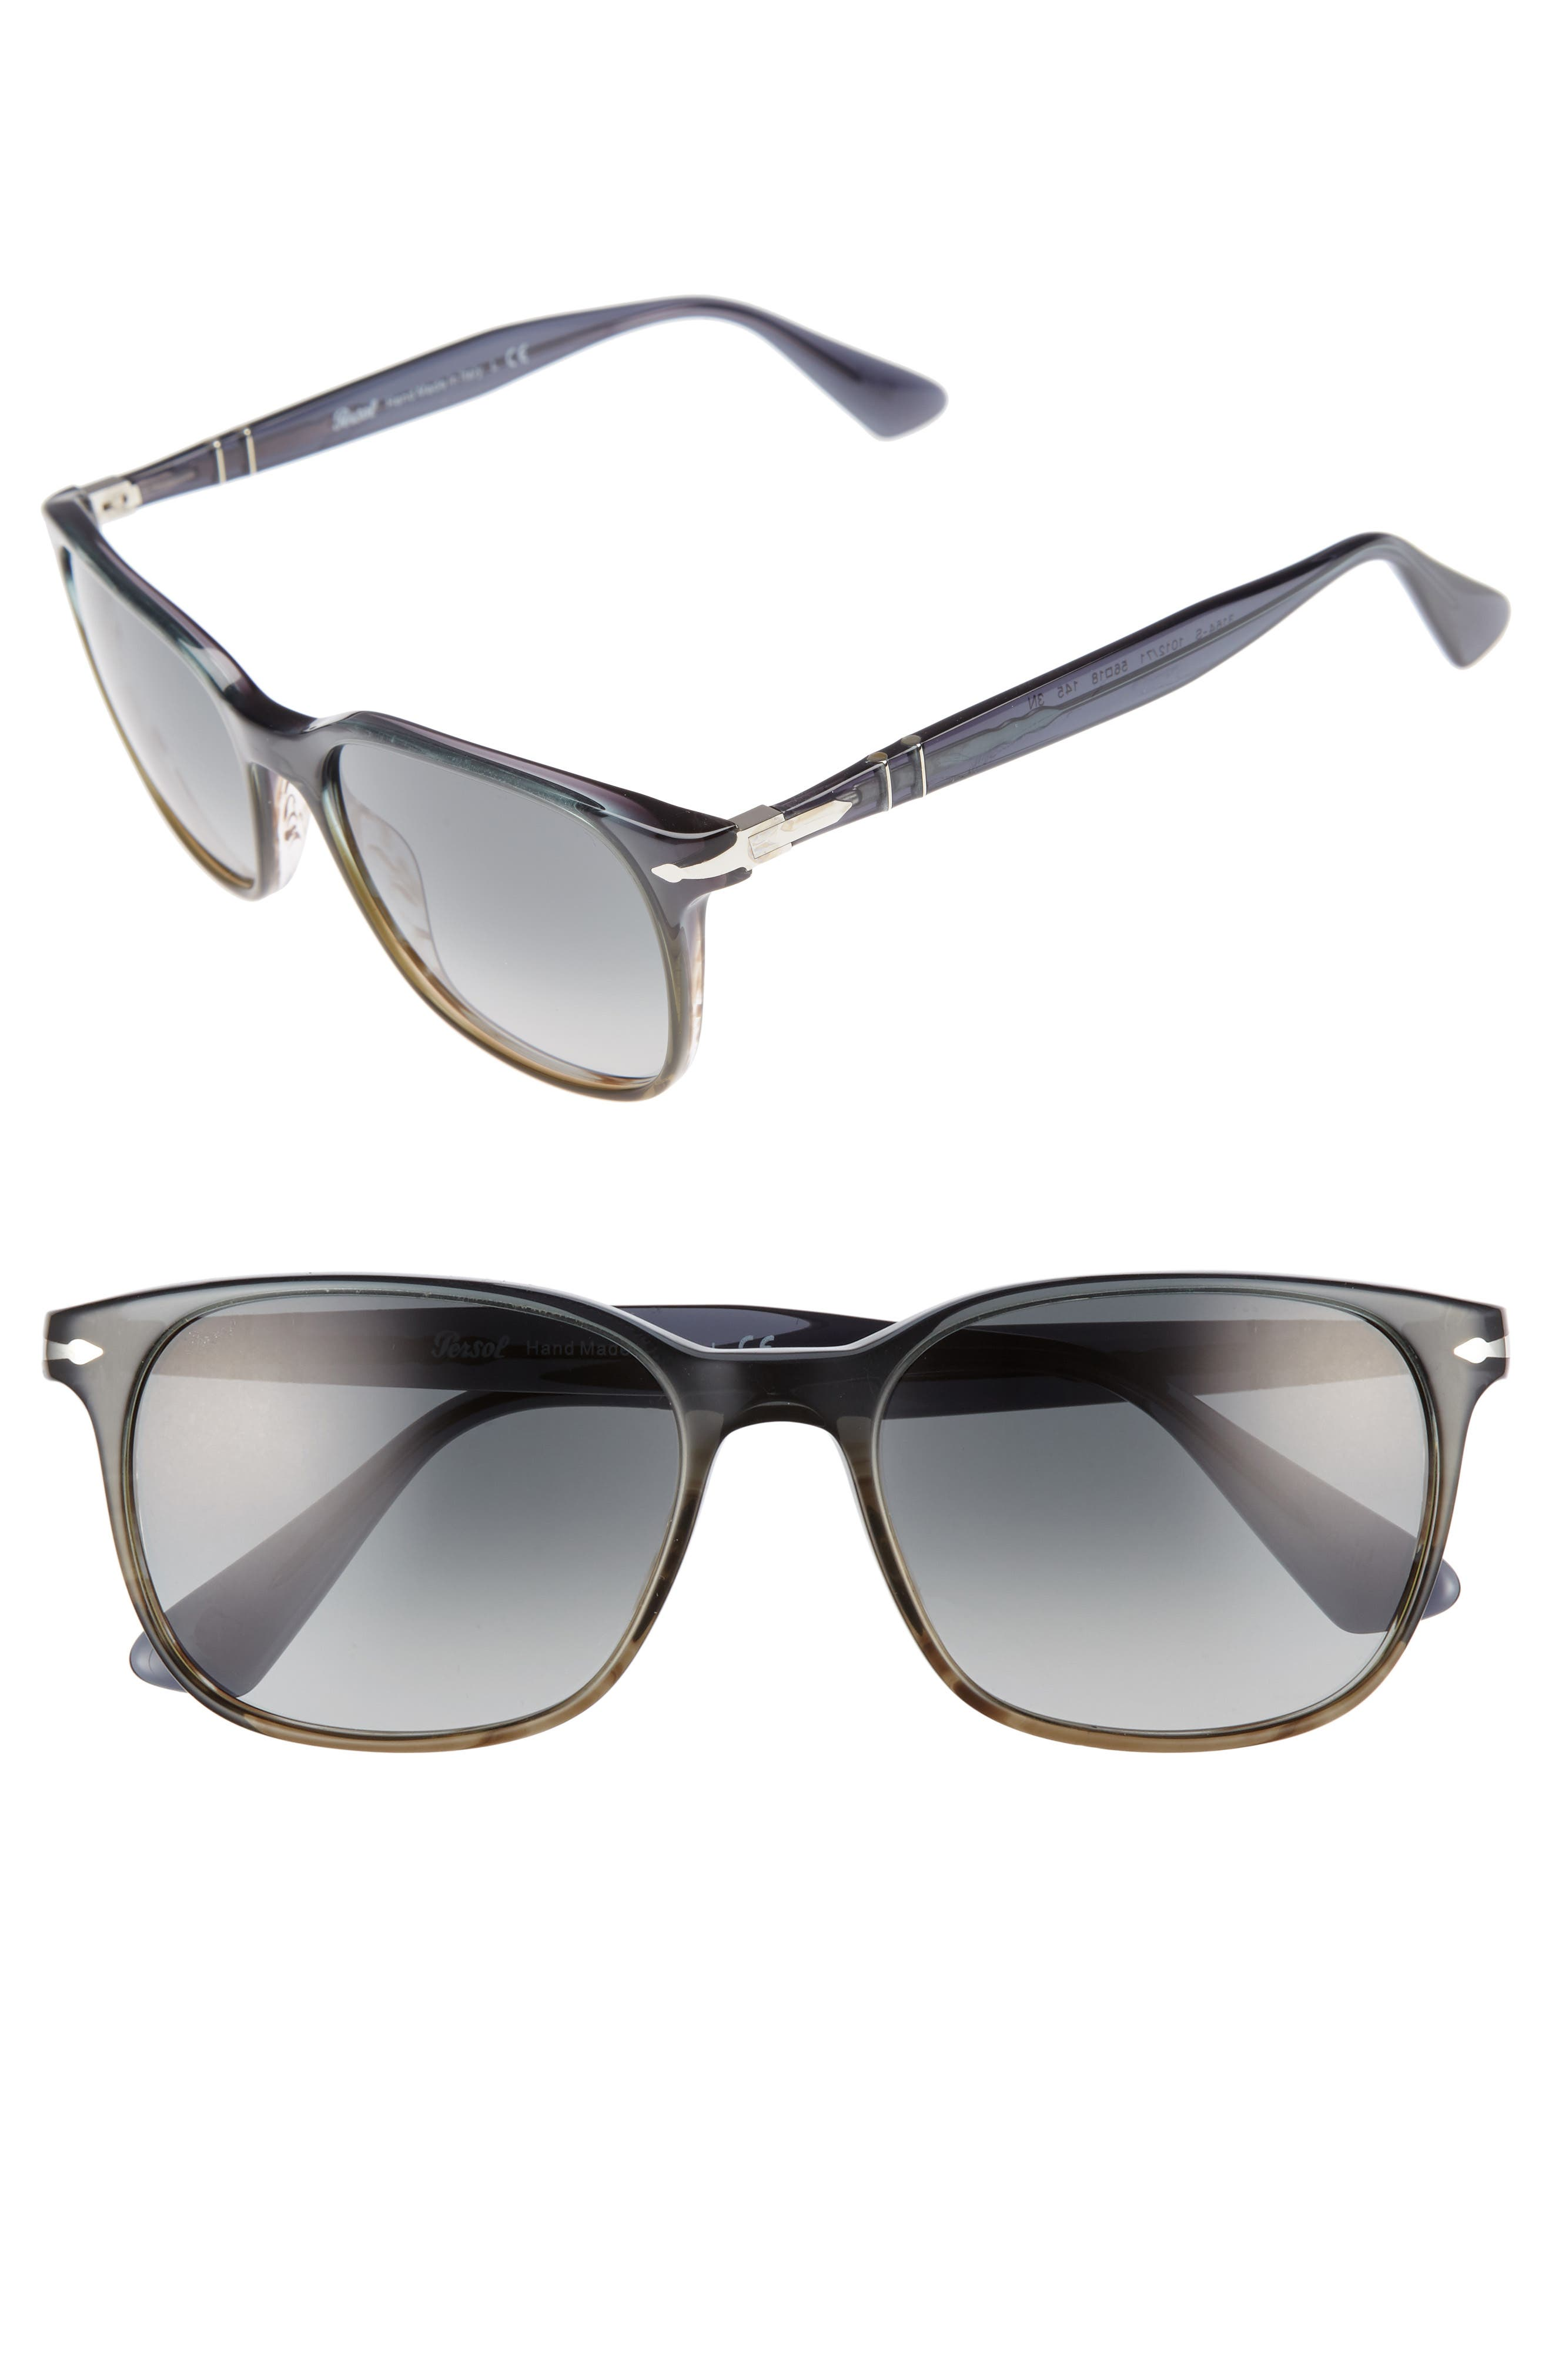 Persol Officina 56mm Polarized Sungasses